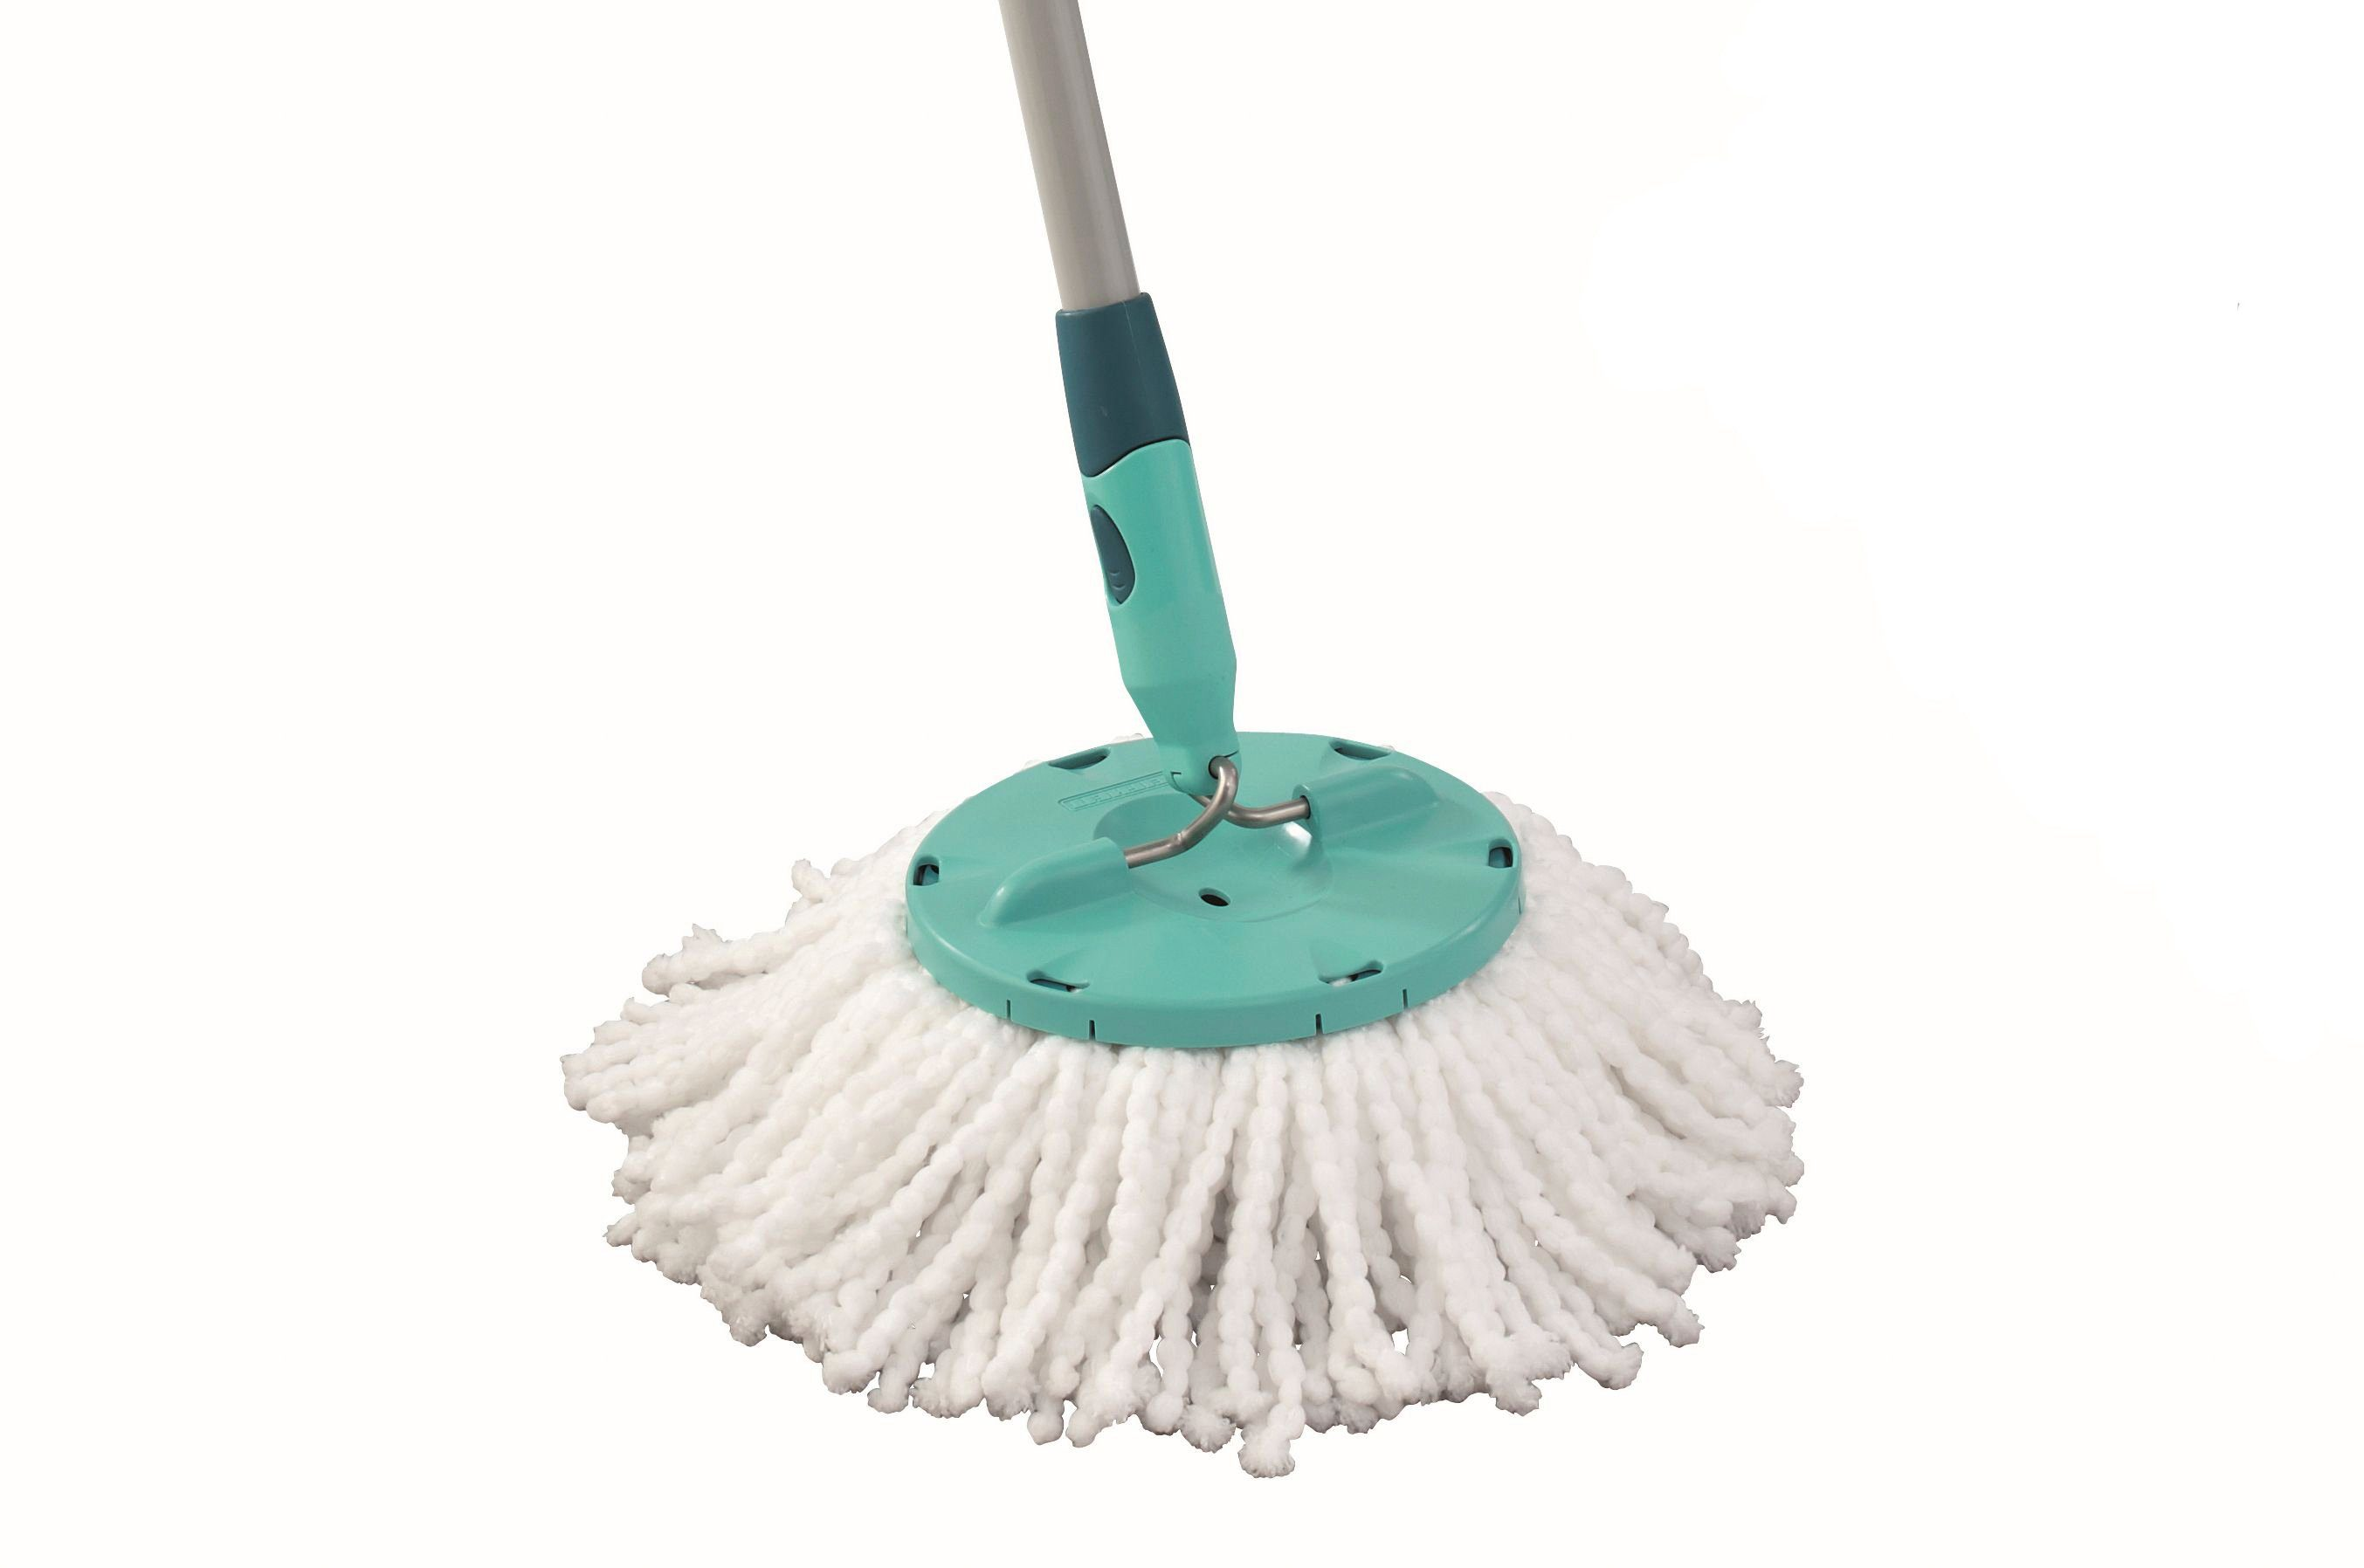 Leifheit Clean Twist Mop Leifheit Ersatzmop »clean Twist Mop«, 2er-set | Otto